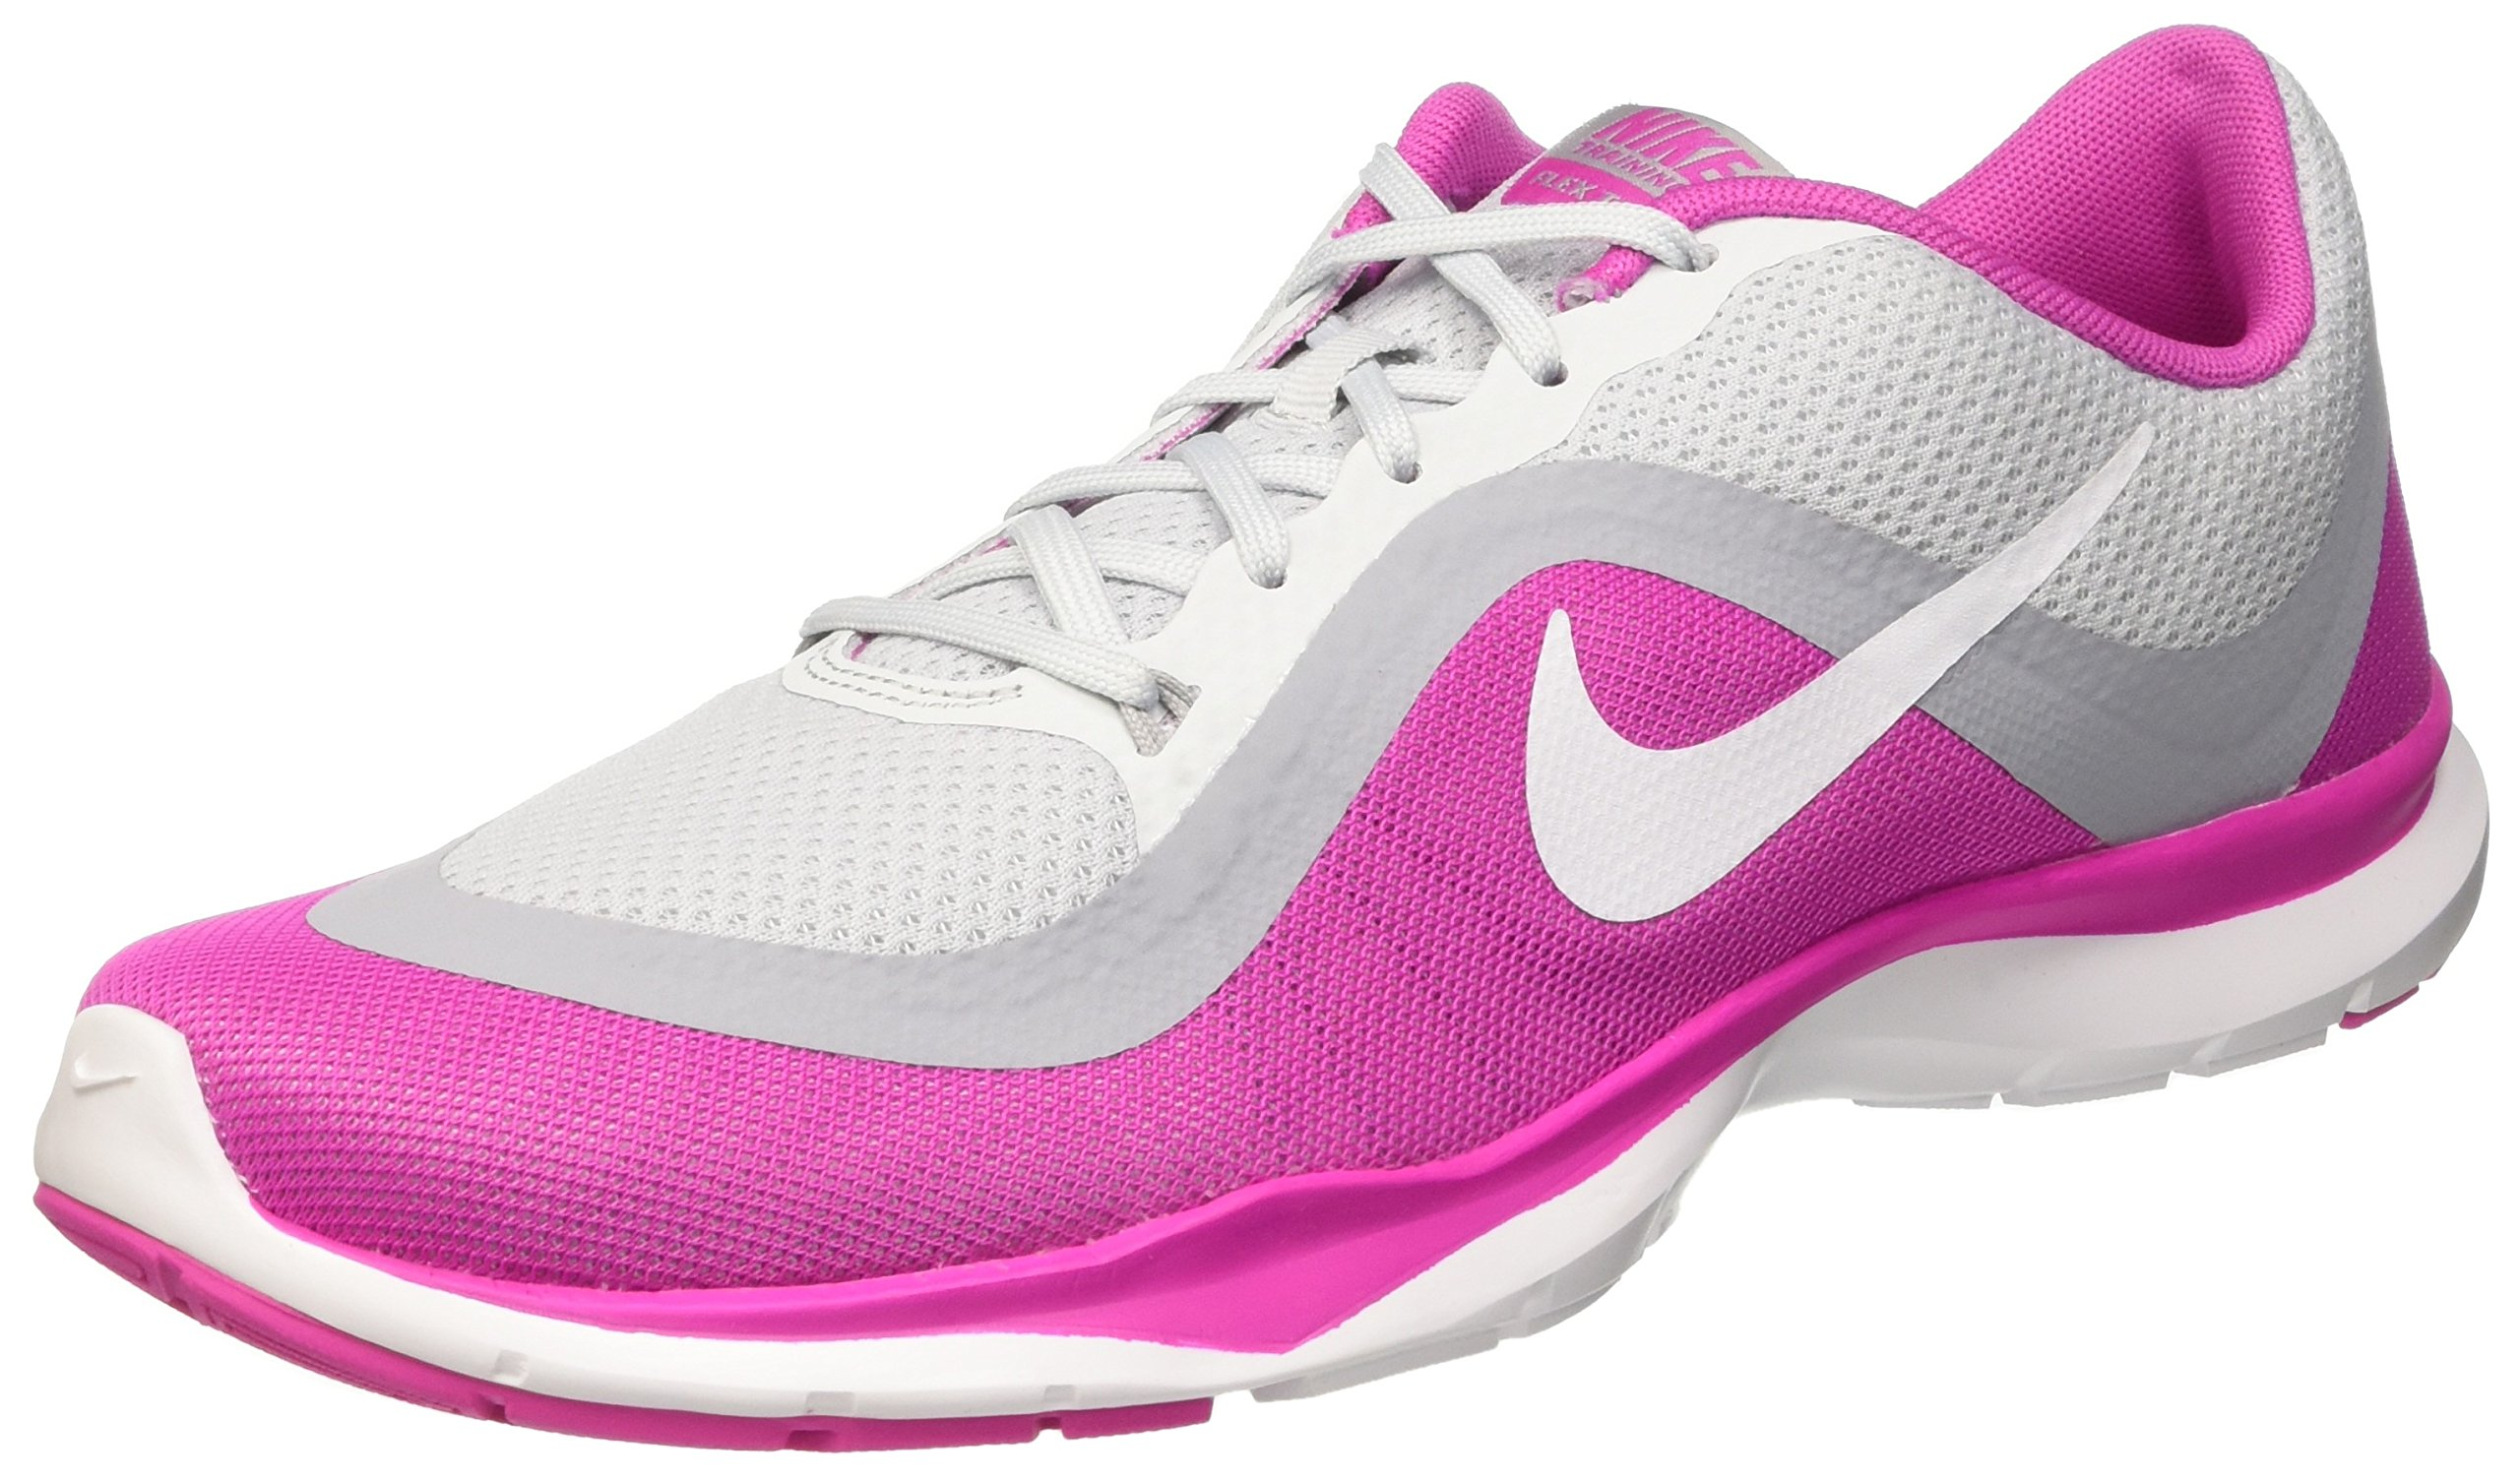 premium selection a4136 d3029 Galleon - Nike Women s Flex Trainer 6 Pure Platinum White Pink Force Wolf  Grey 6.5 B(M) US